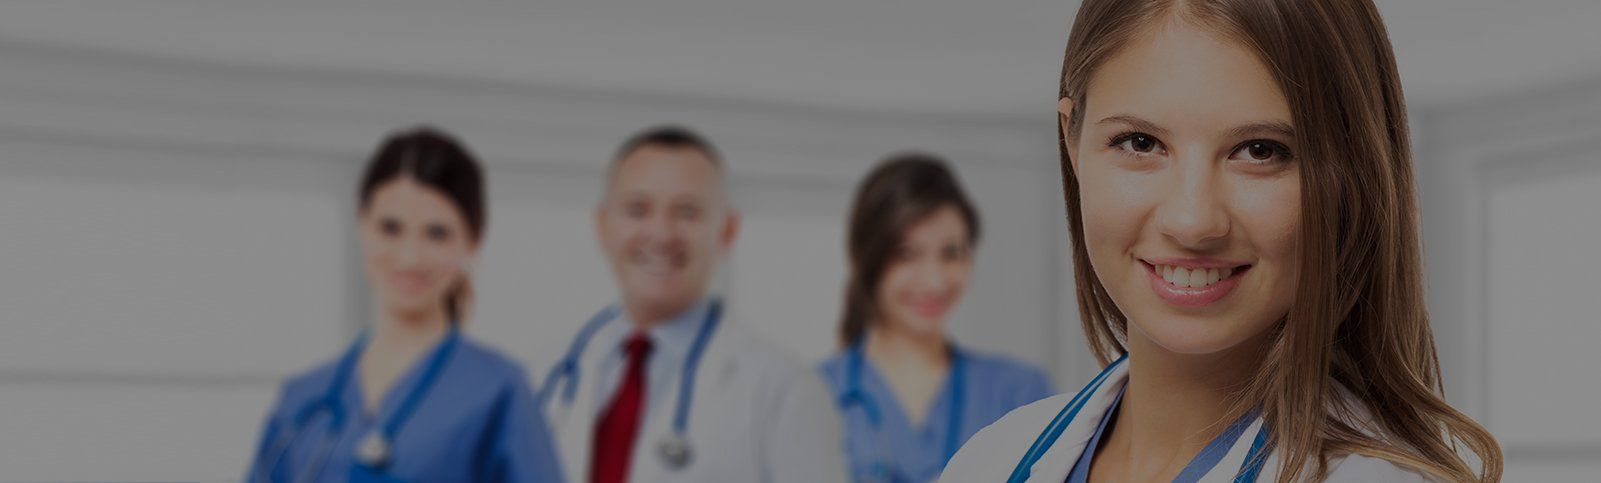 Costa Mesa Urgent Care Center provides a top quality and